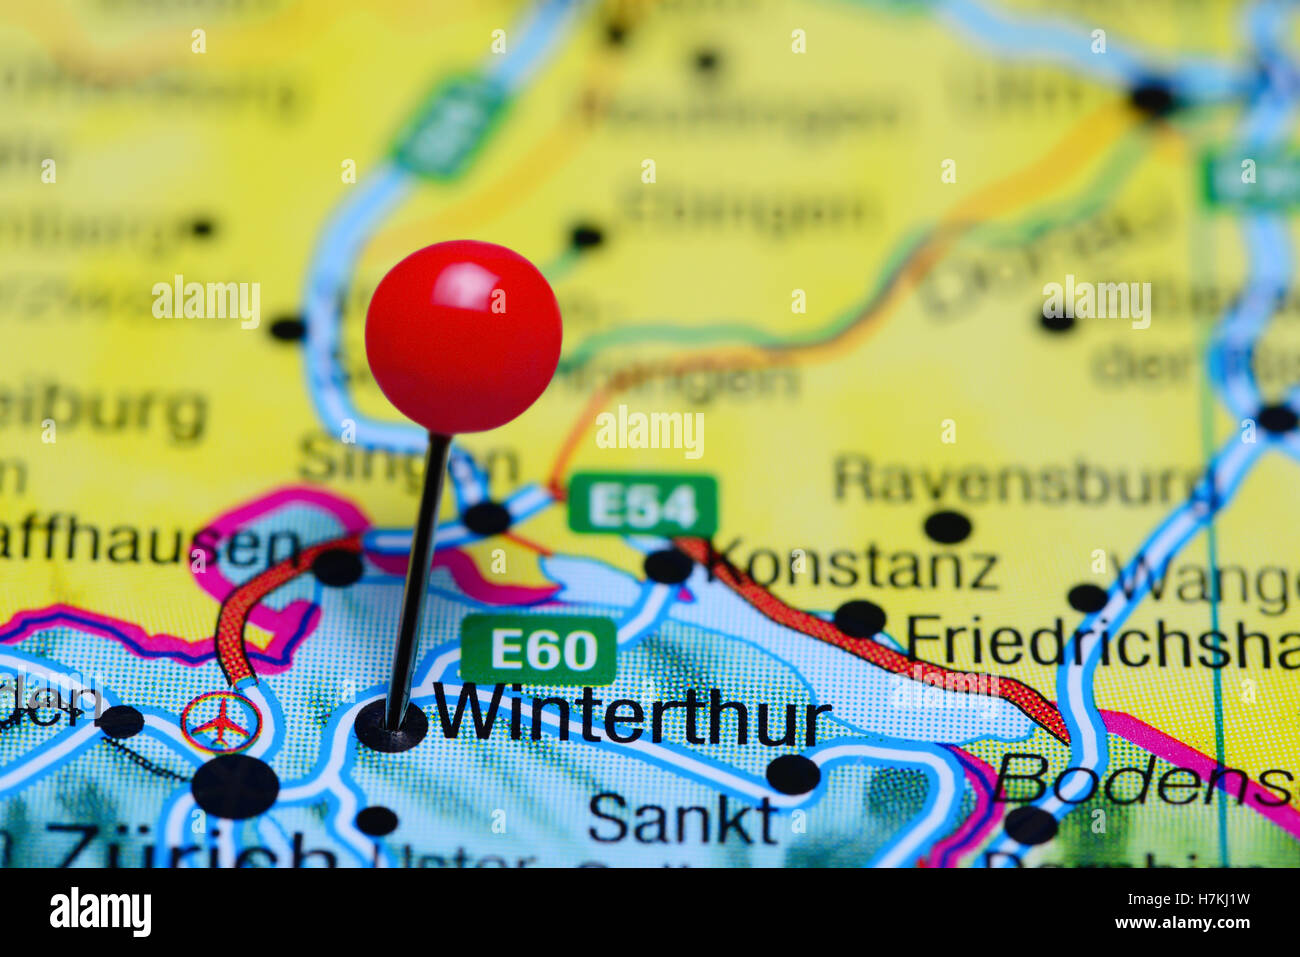 Winterthur Stock Photos Winterthur Stock Images Alamy